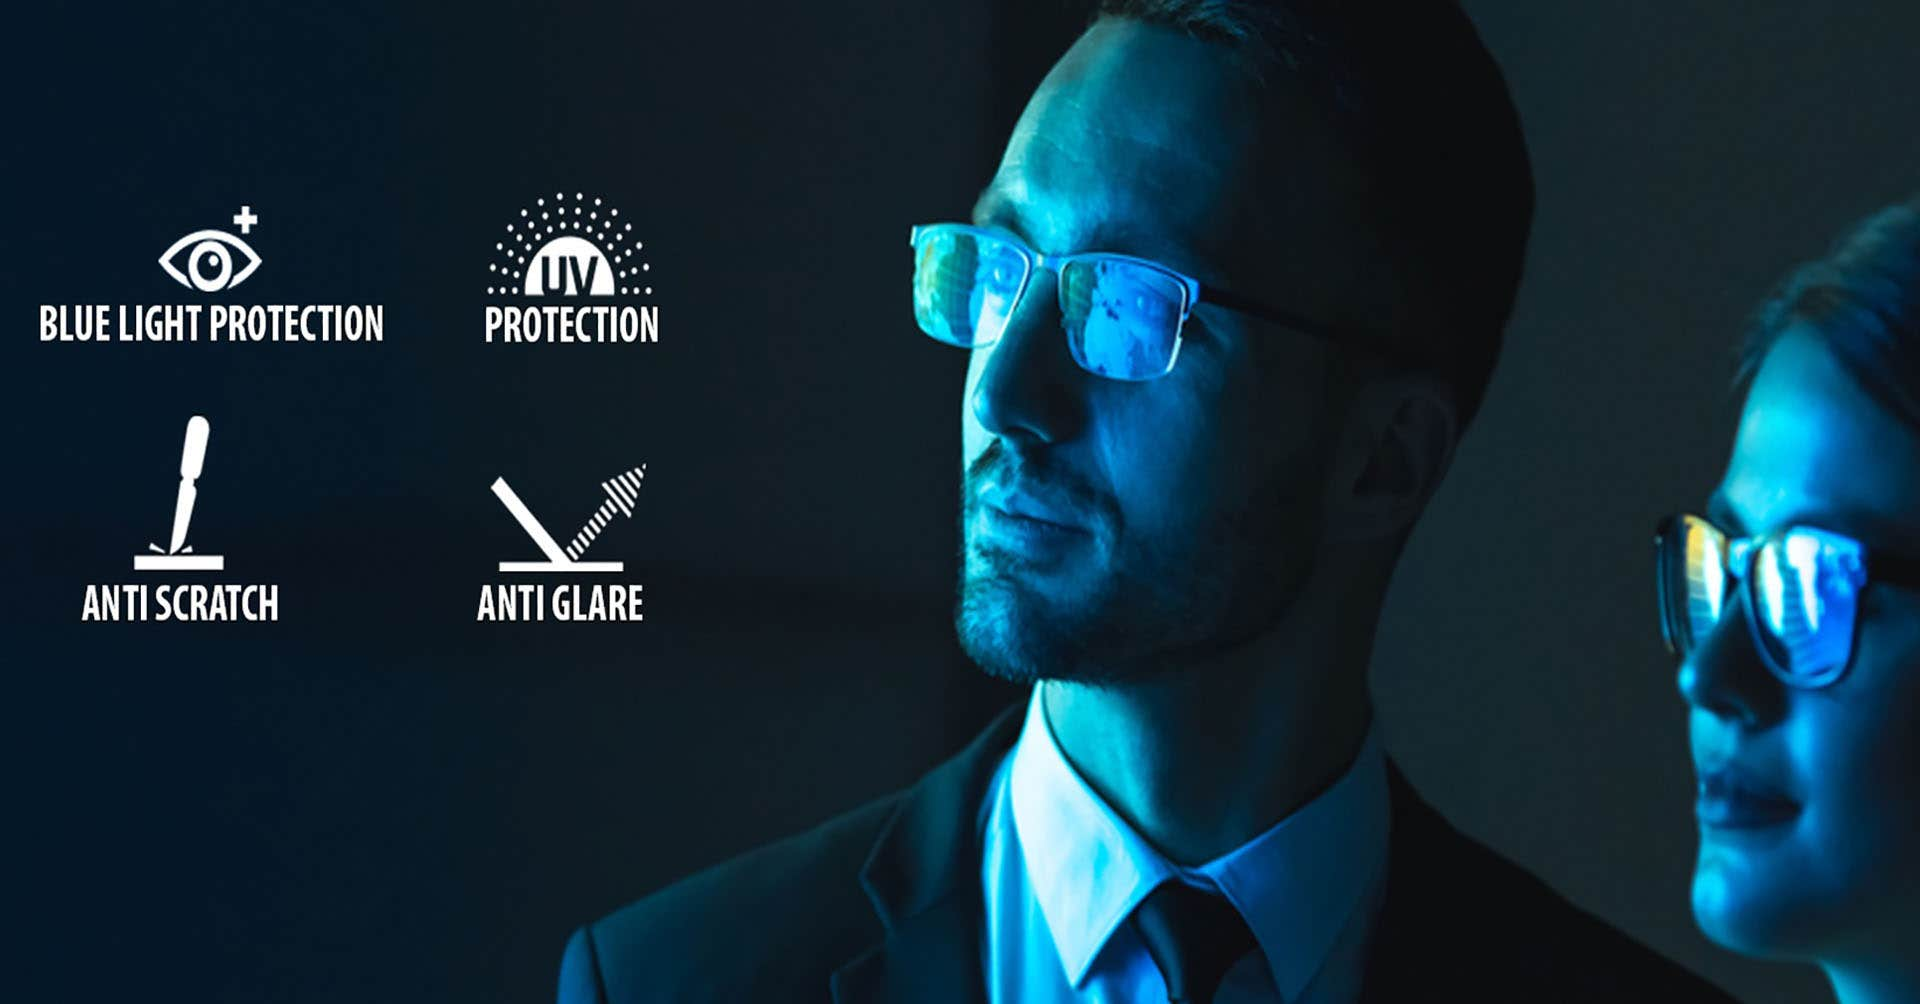 BLUE-CUT DIGITAL PROTECTION LENS